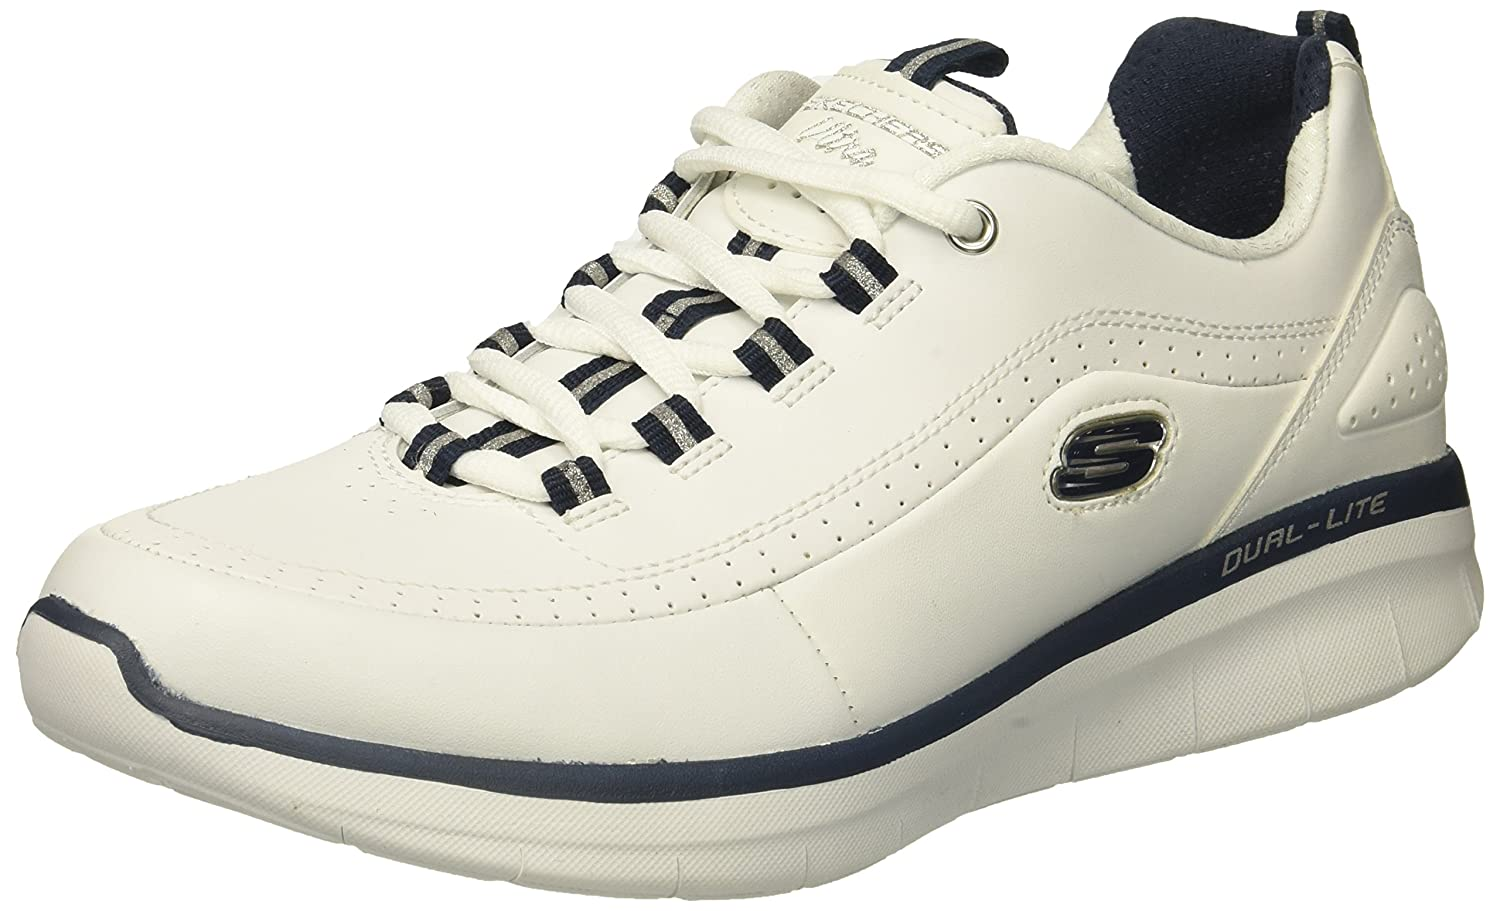 Skechers Women's Synergy 2.0 Fashion Sneaker B01MYALKOW 8 B(M) US|White/Navy